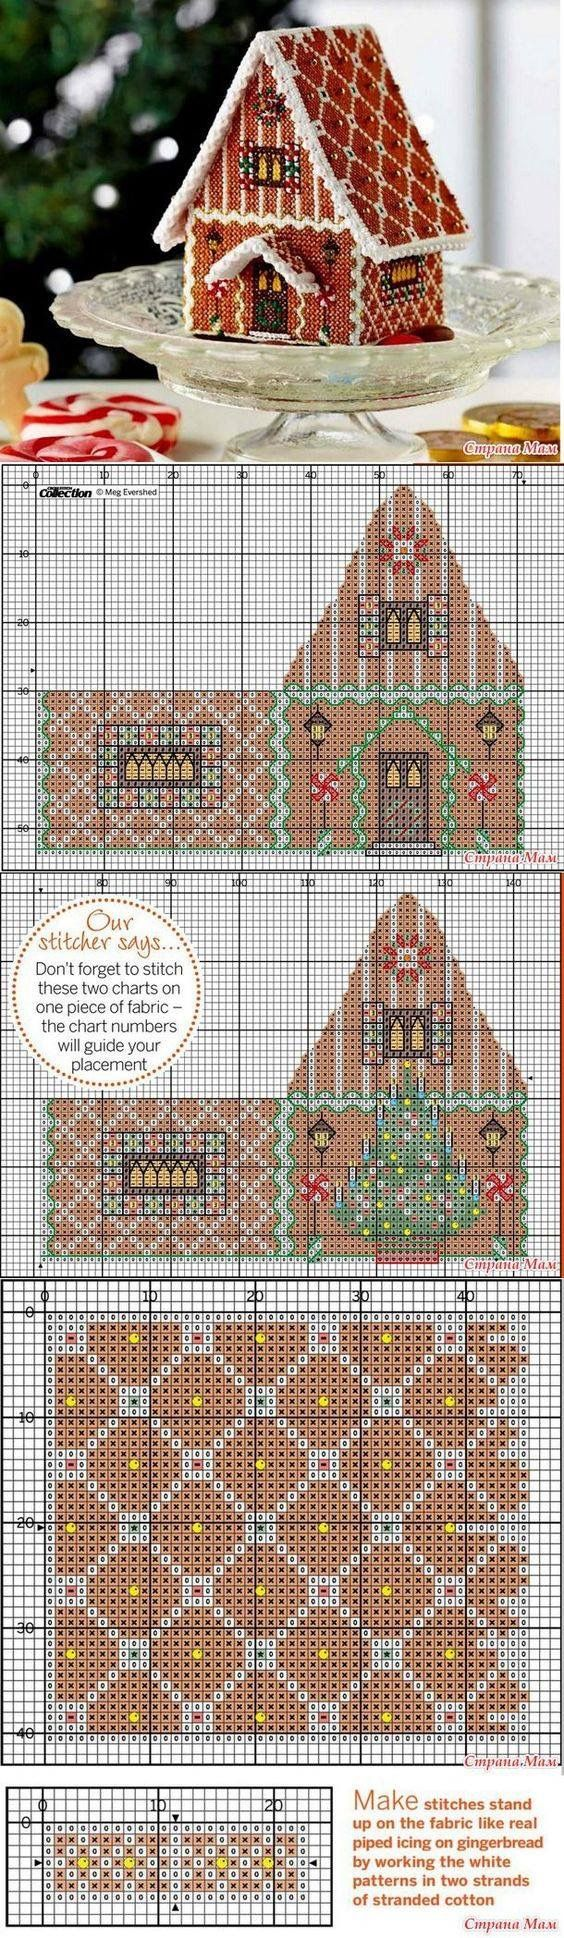 Gingerbread House 3-D cross stitch / plastic canvas